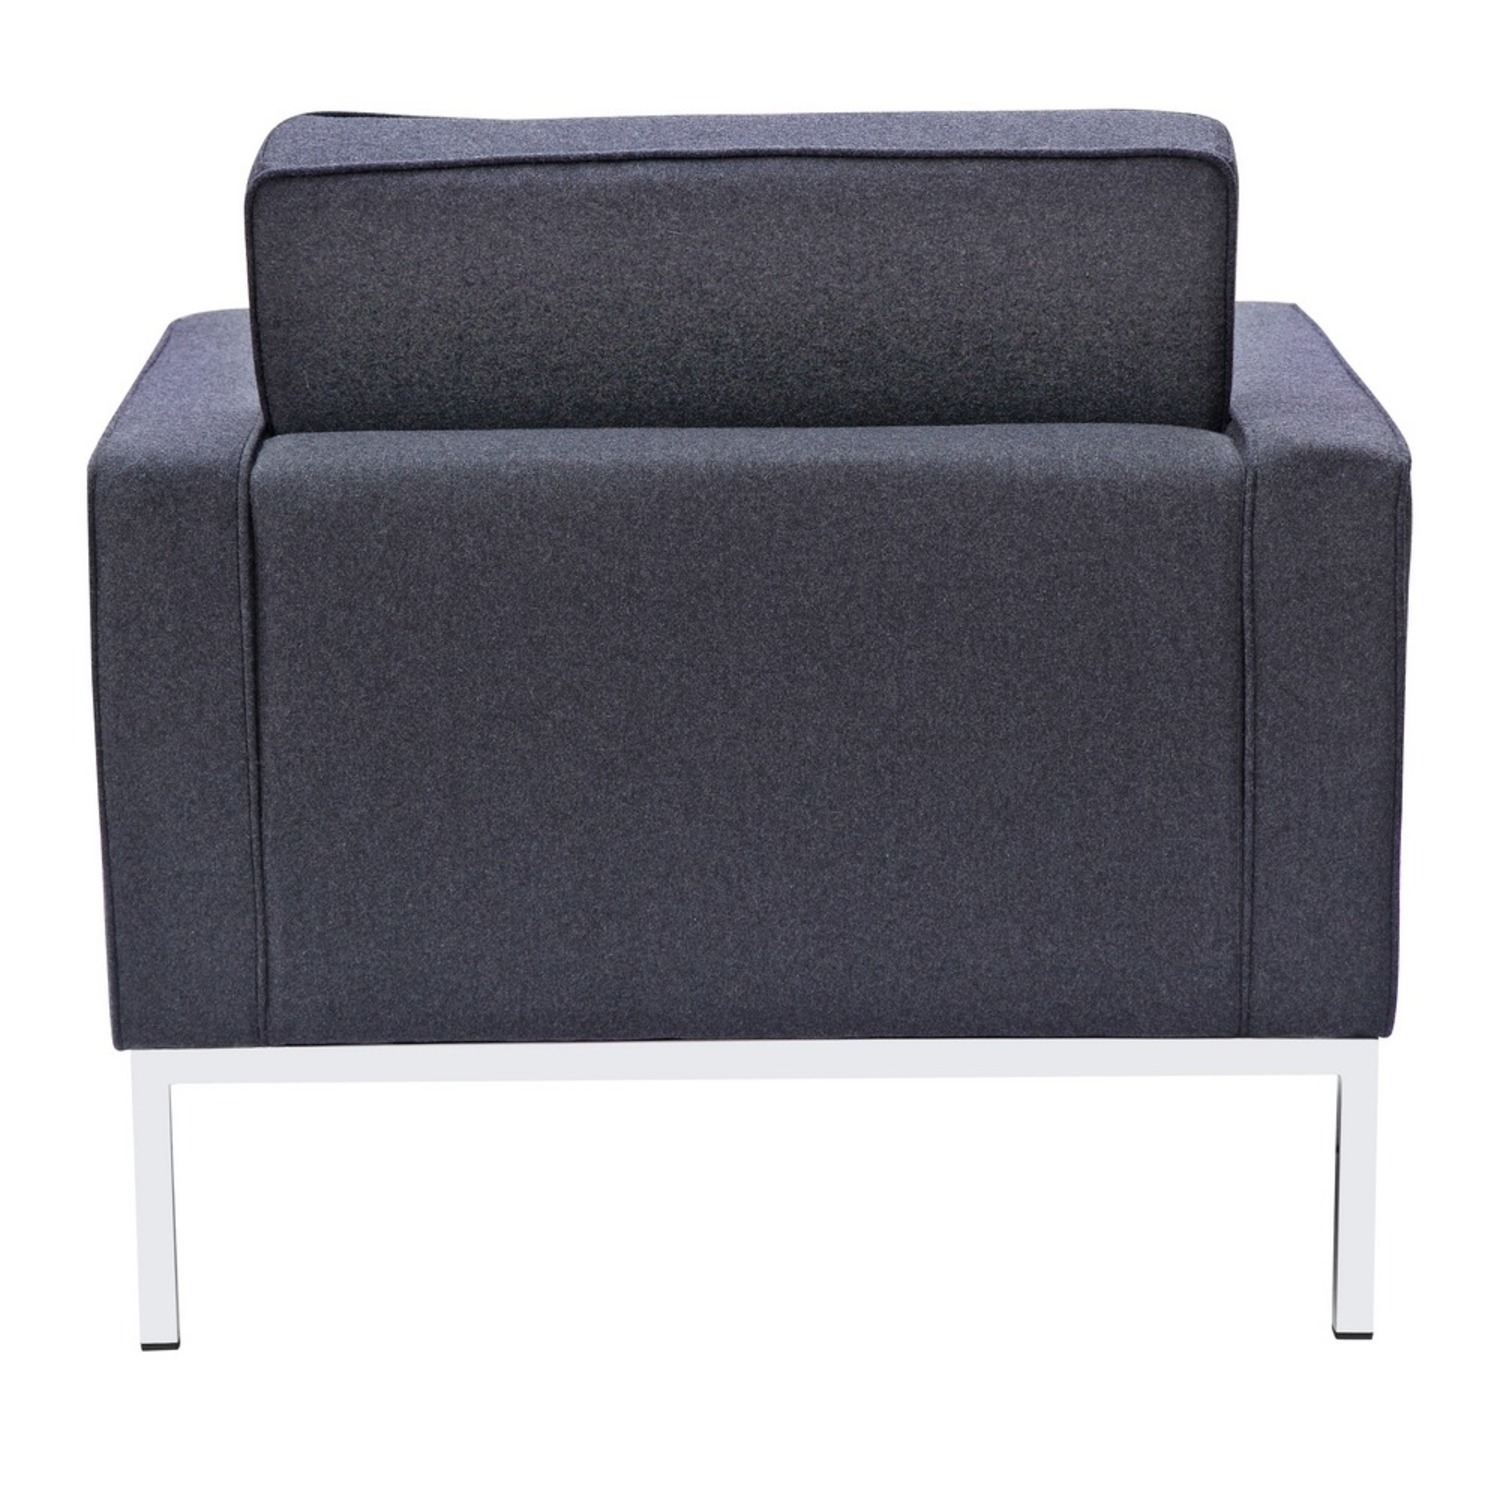 Contemporary Chair In Gray Wool Fabric - image-2